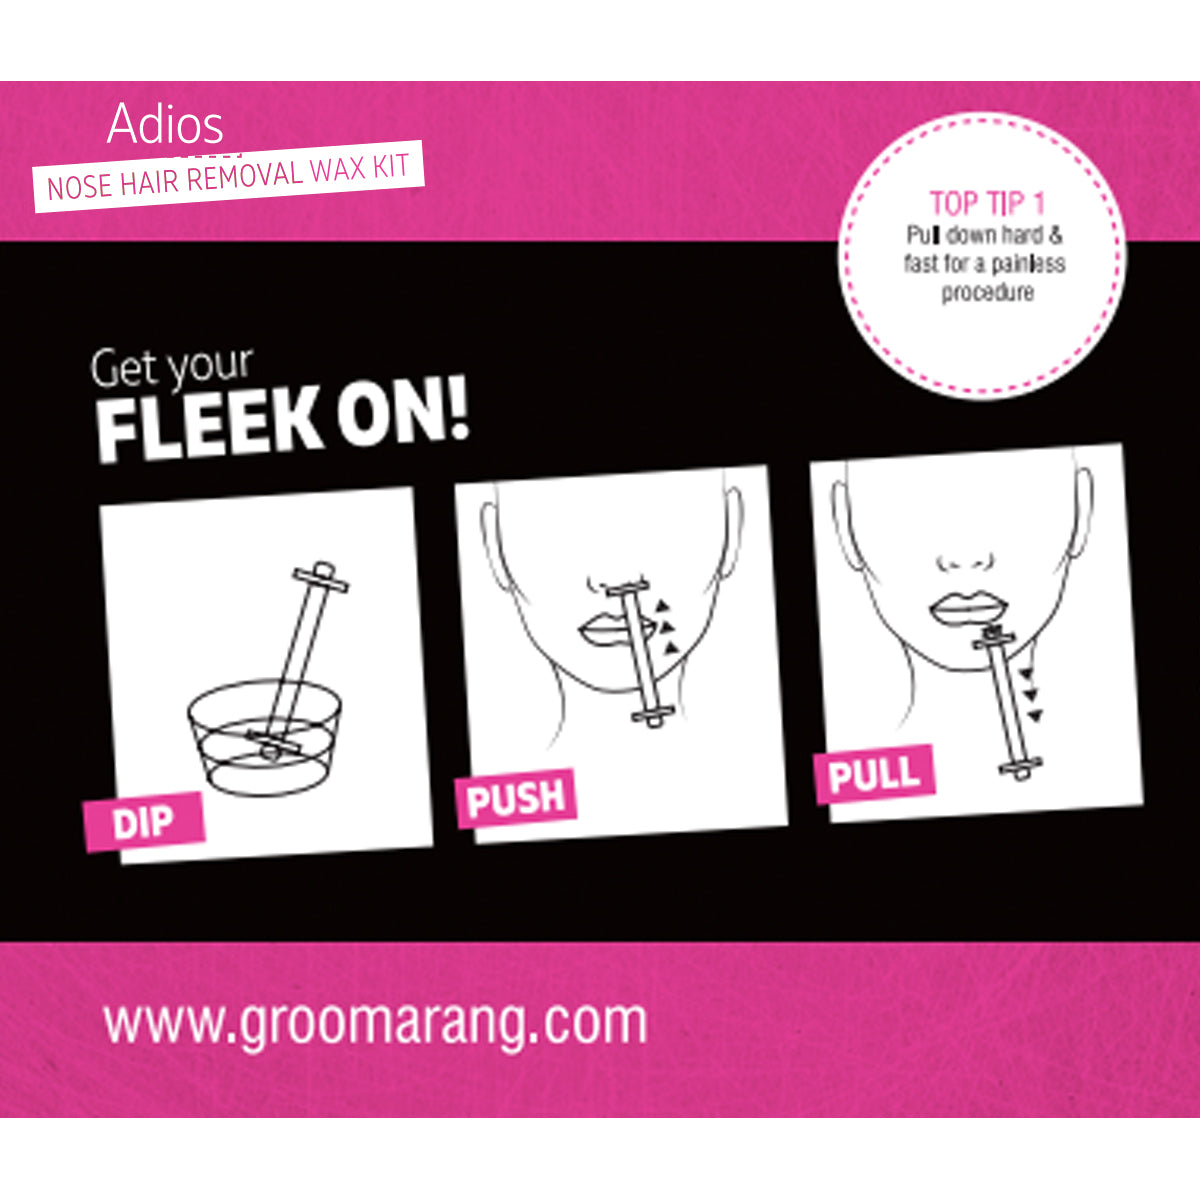 Groomarang For Her- Adios Nose Hair Removal Wax Kit For Her, Waxing Kits & Supplies - Image 2